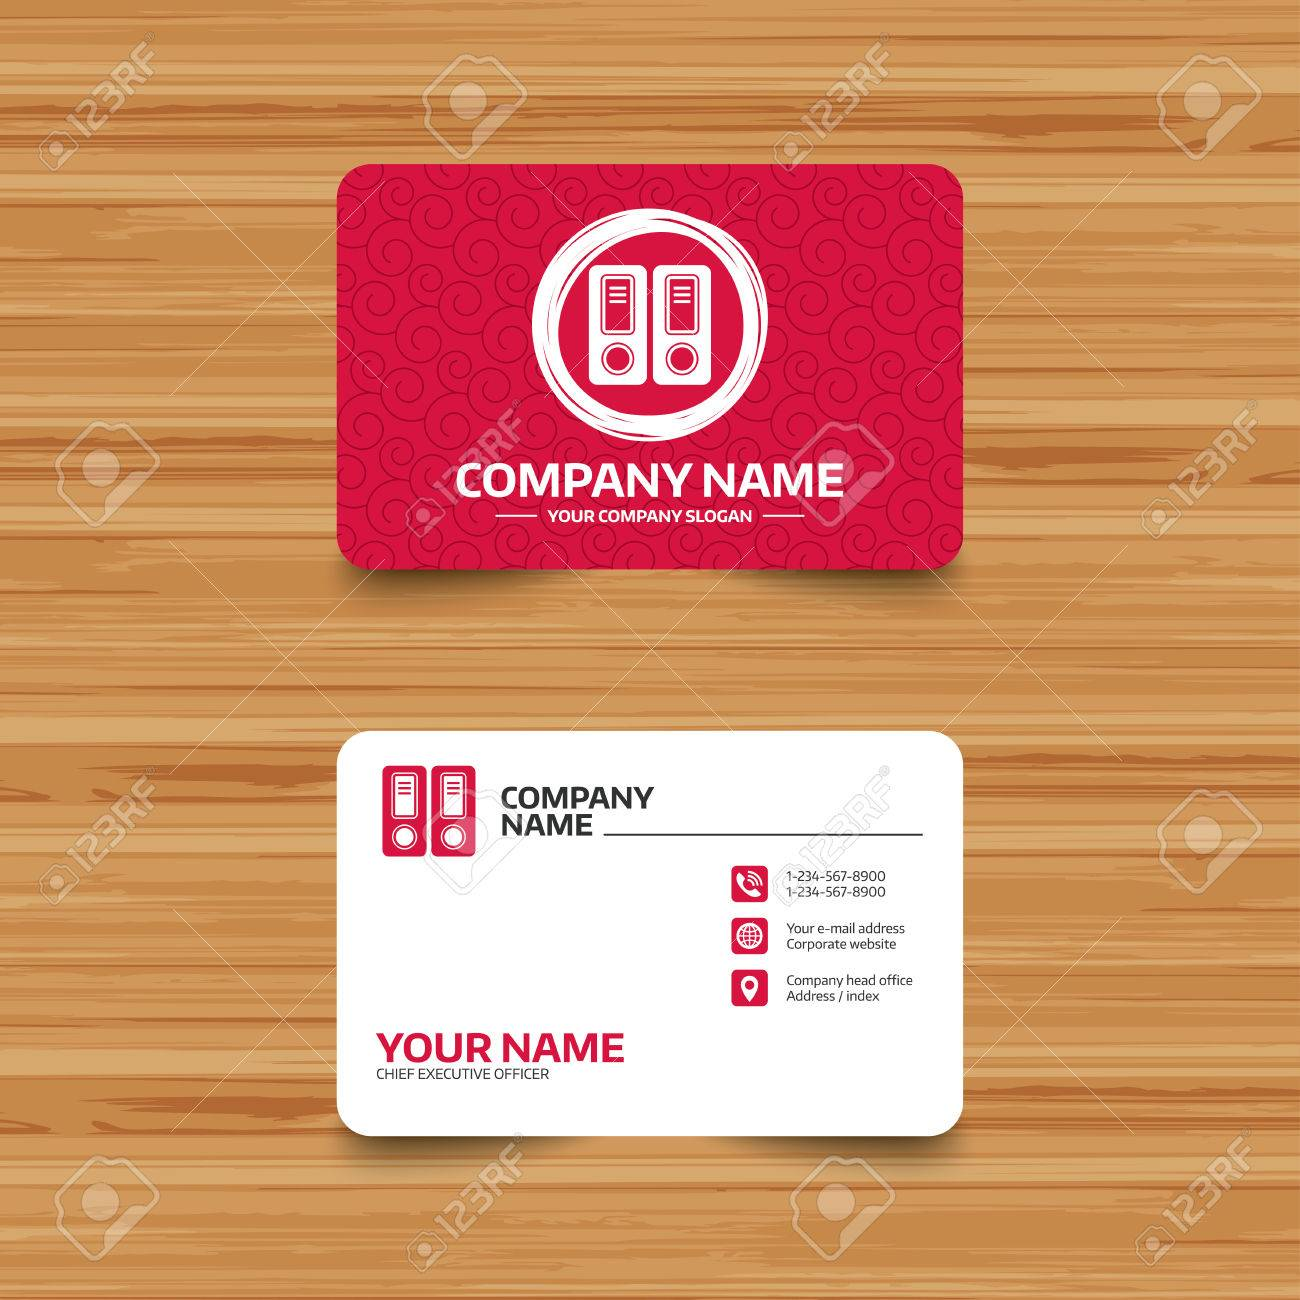 Business card template with texture document folder sign business card template with texture document folder sign accounting binder symbol bookkeeping management reheart Choice Image